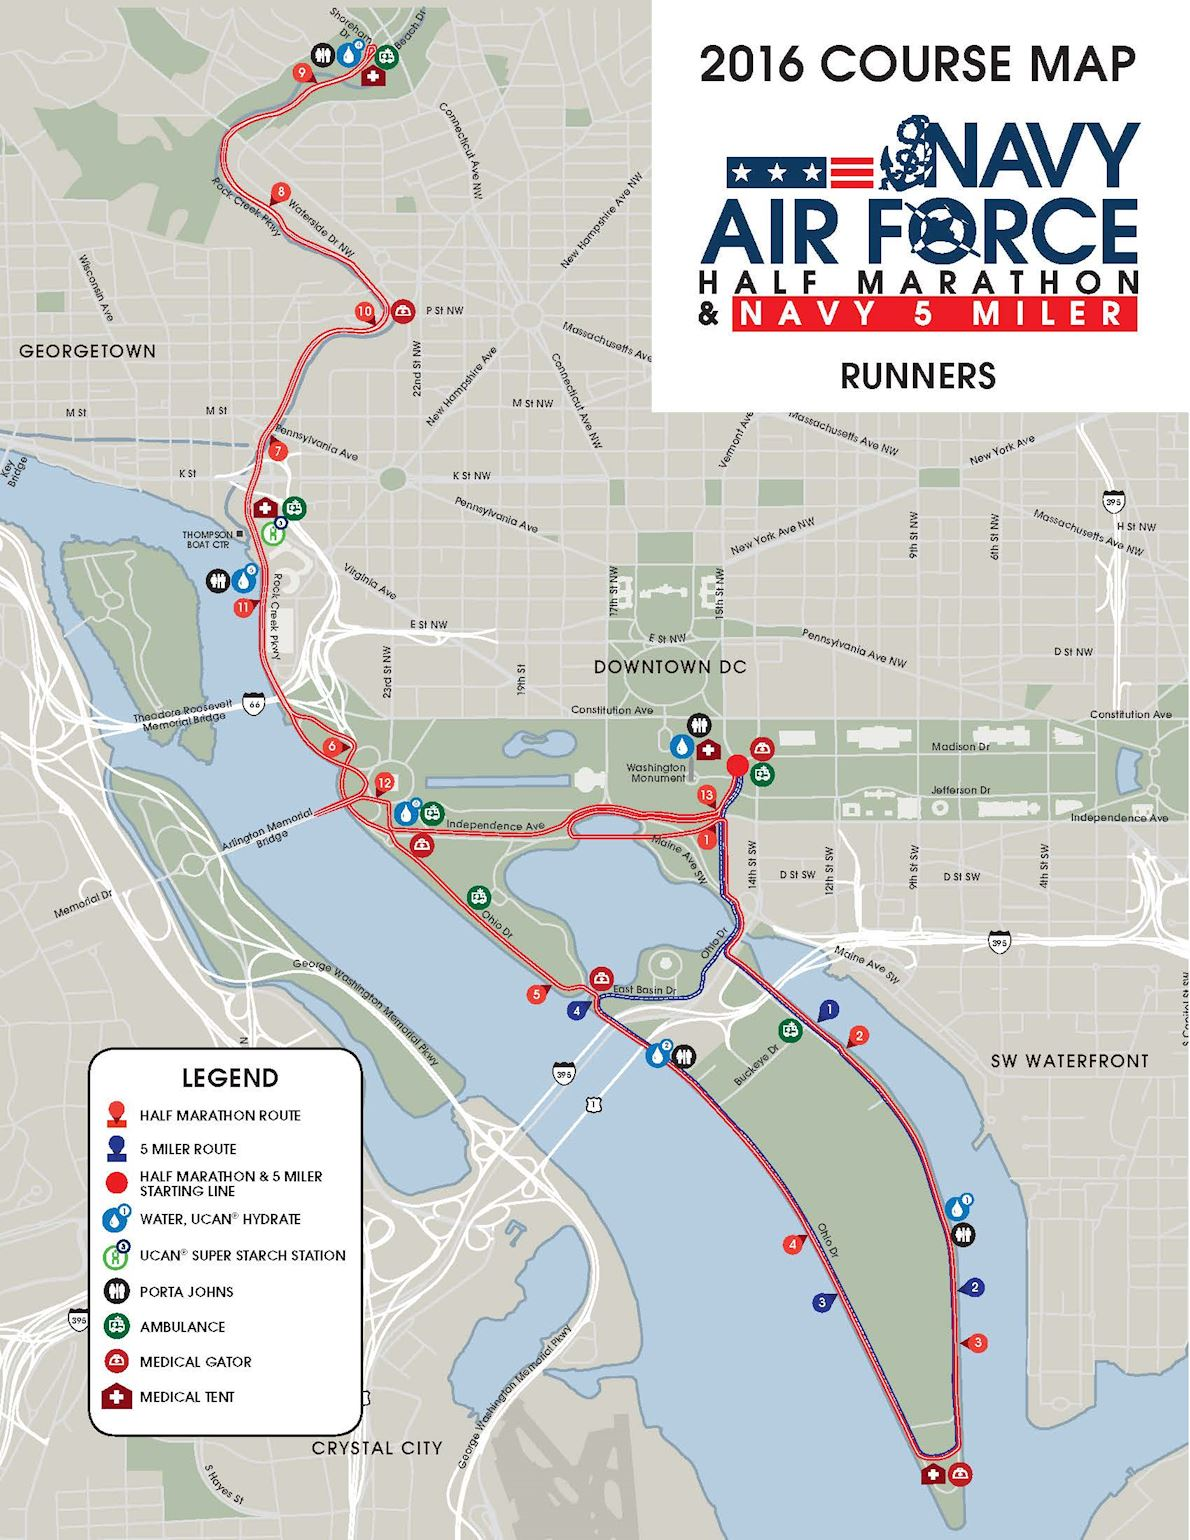 Navy-Air Force Half Marathon Route Map